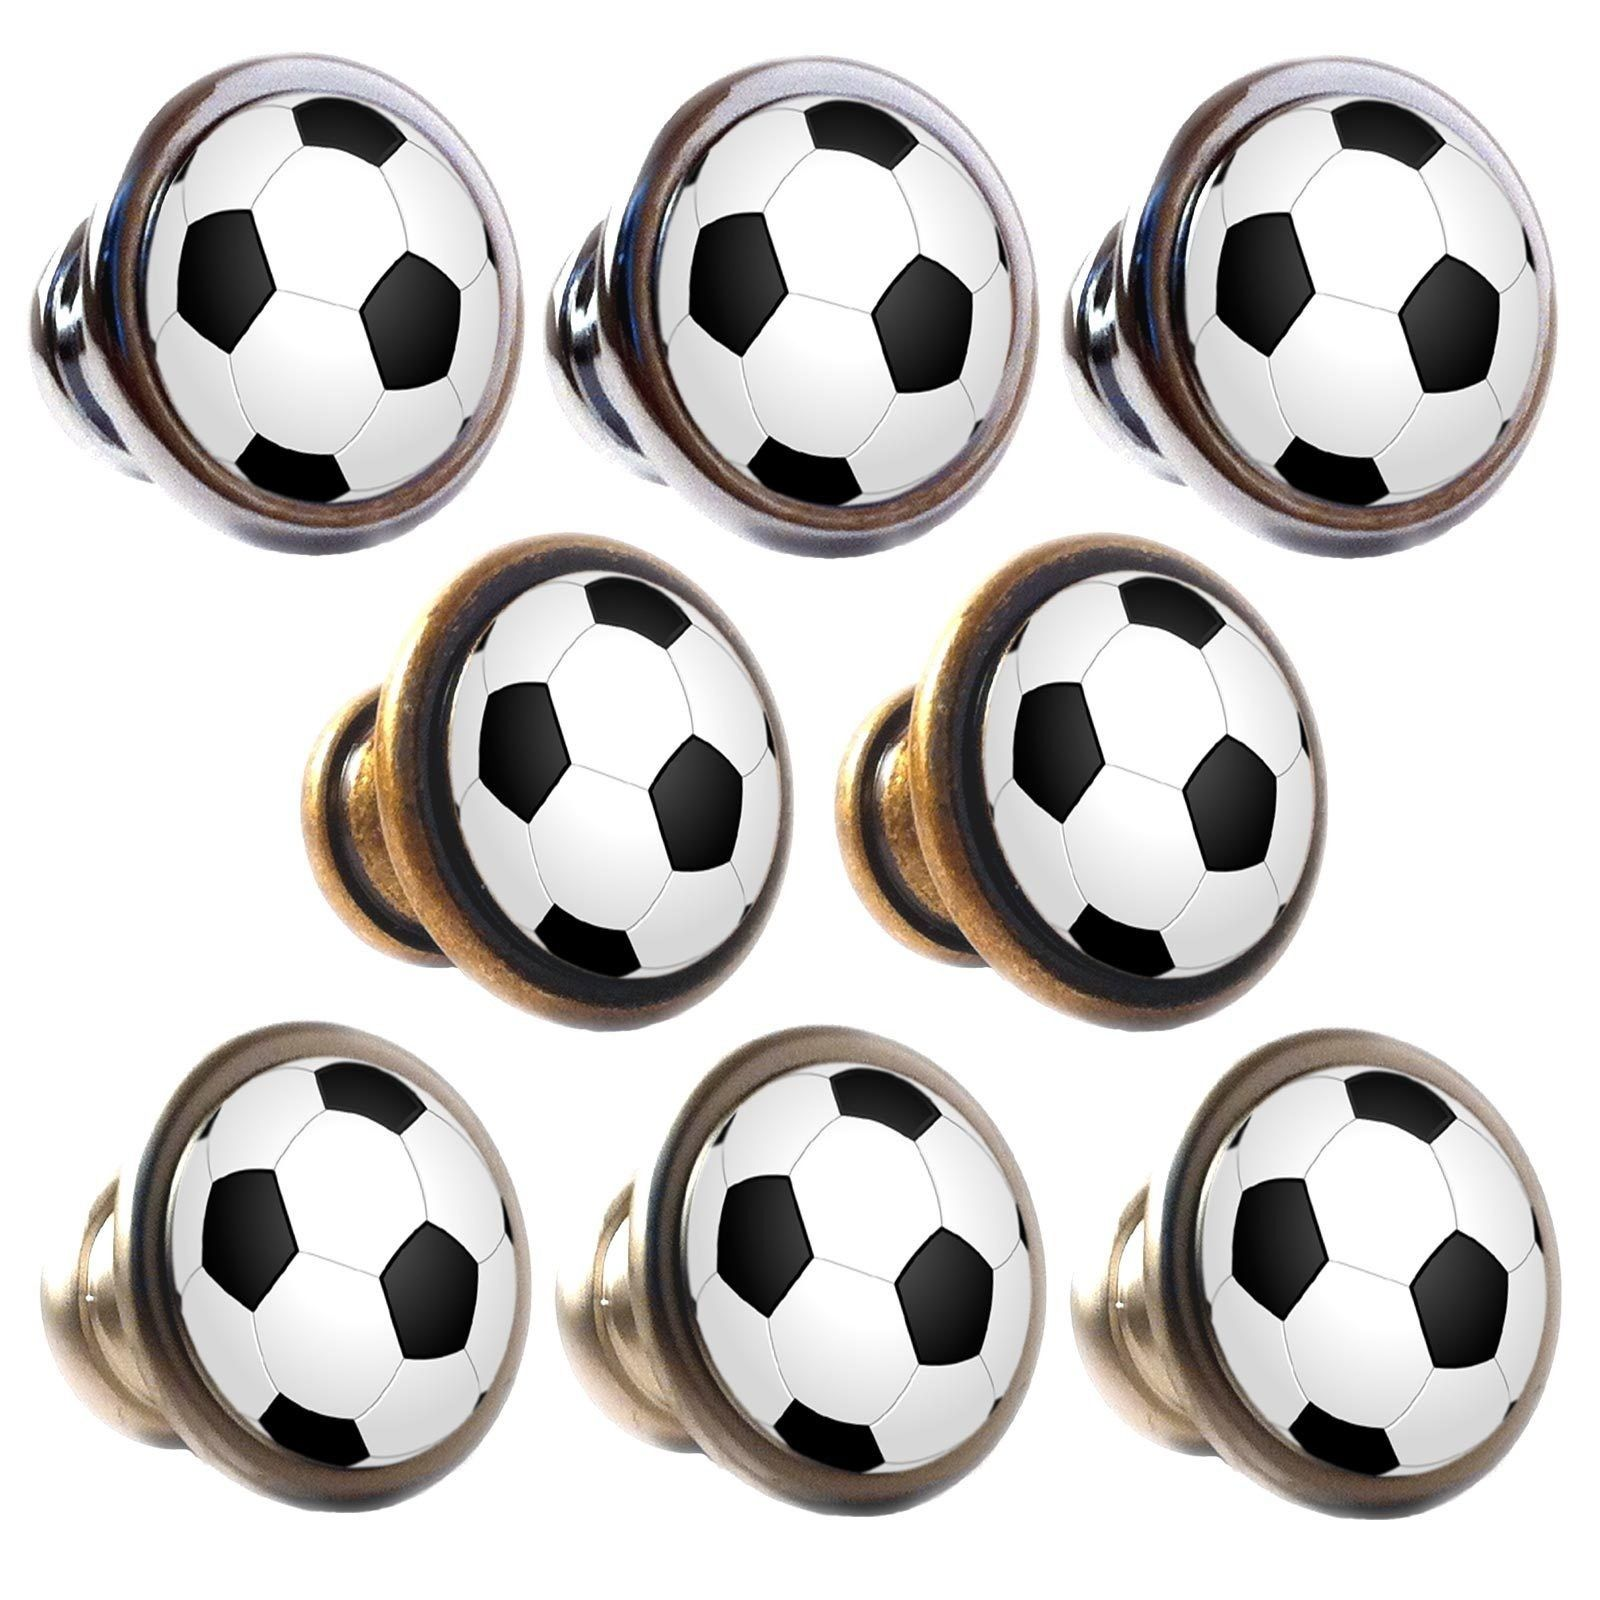 Football Door Handles Photo Album - Woonv.com - Handle idea